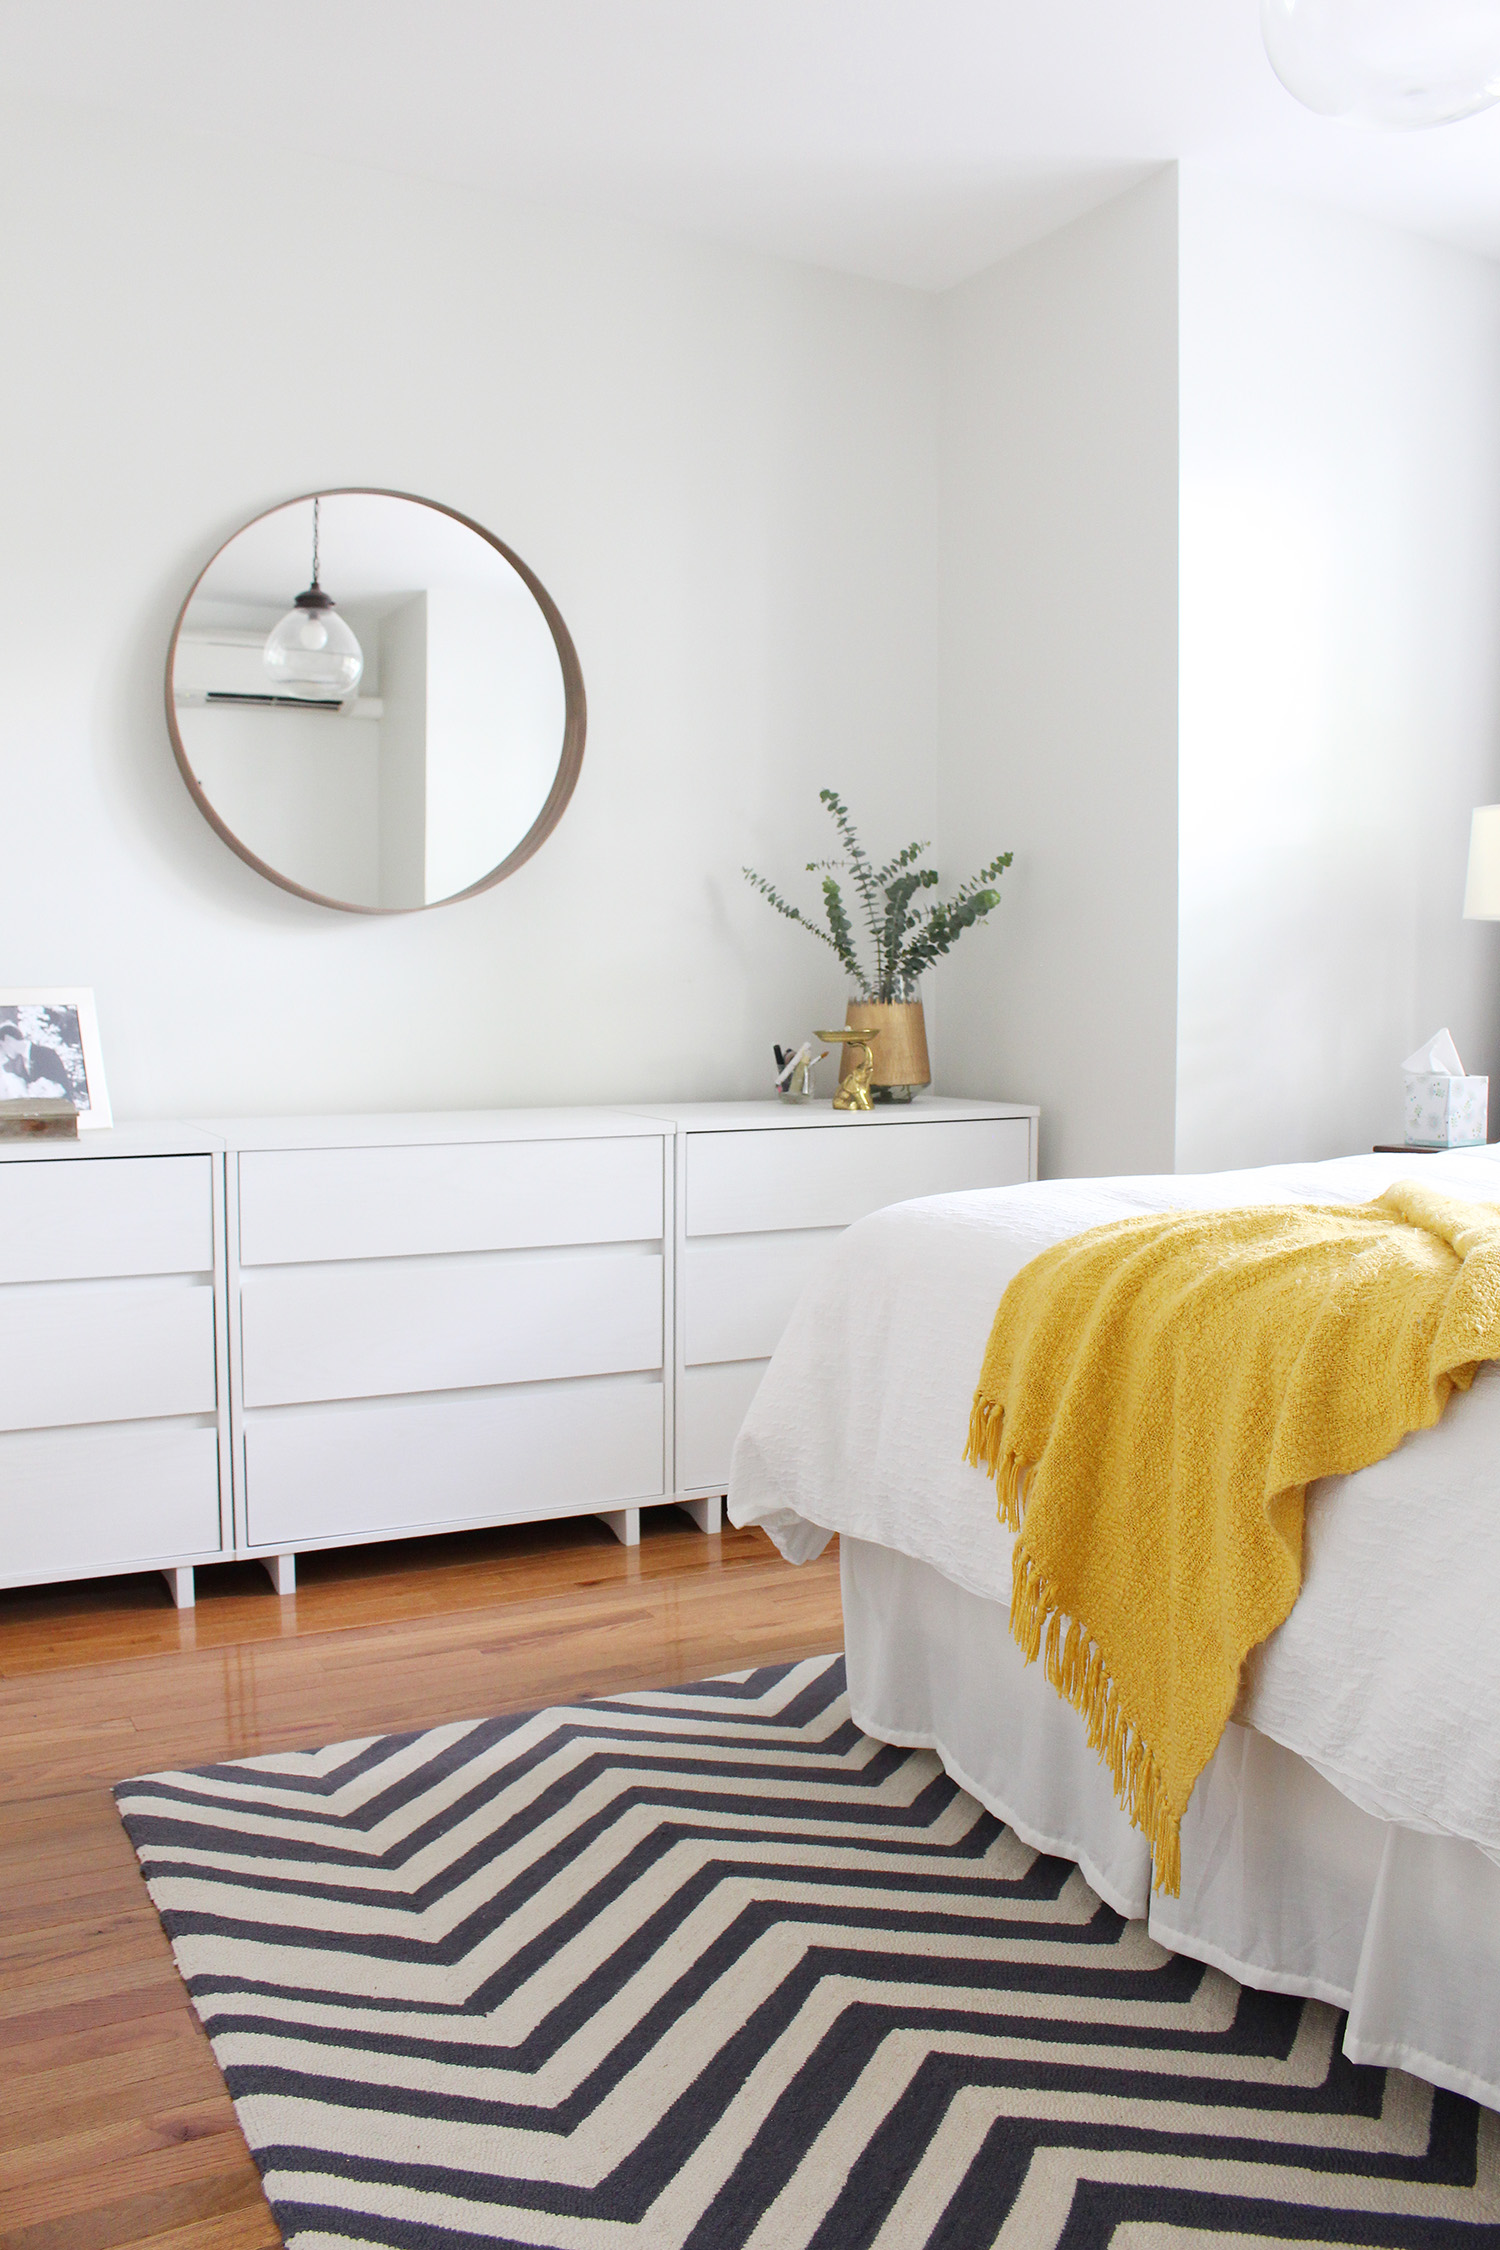 Adding mirrors is one trick to make a small space feel bigger. Get more ideas at the Mix & Match Blog.